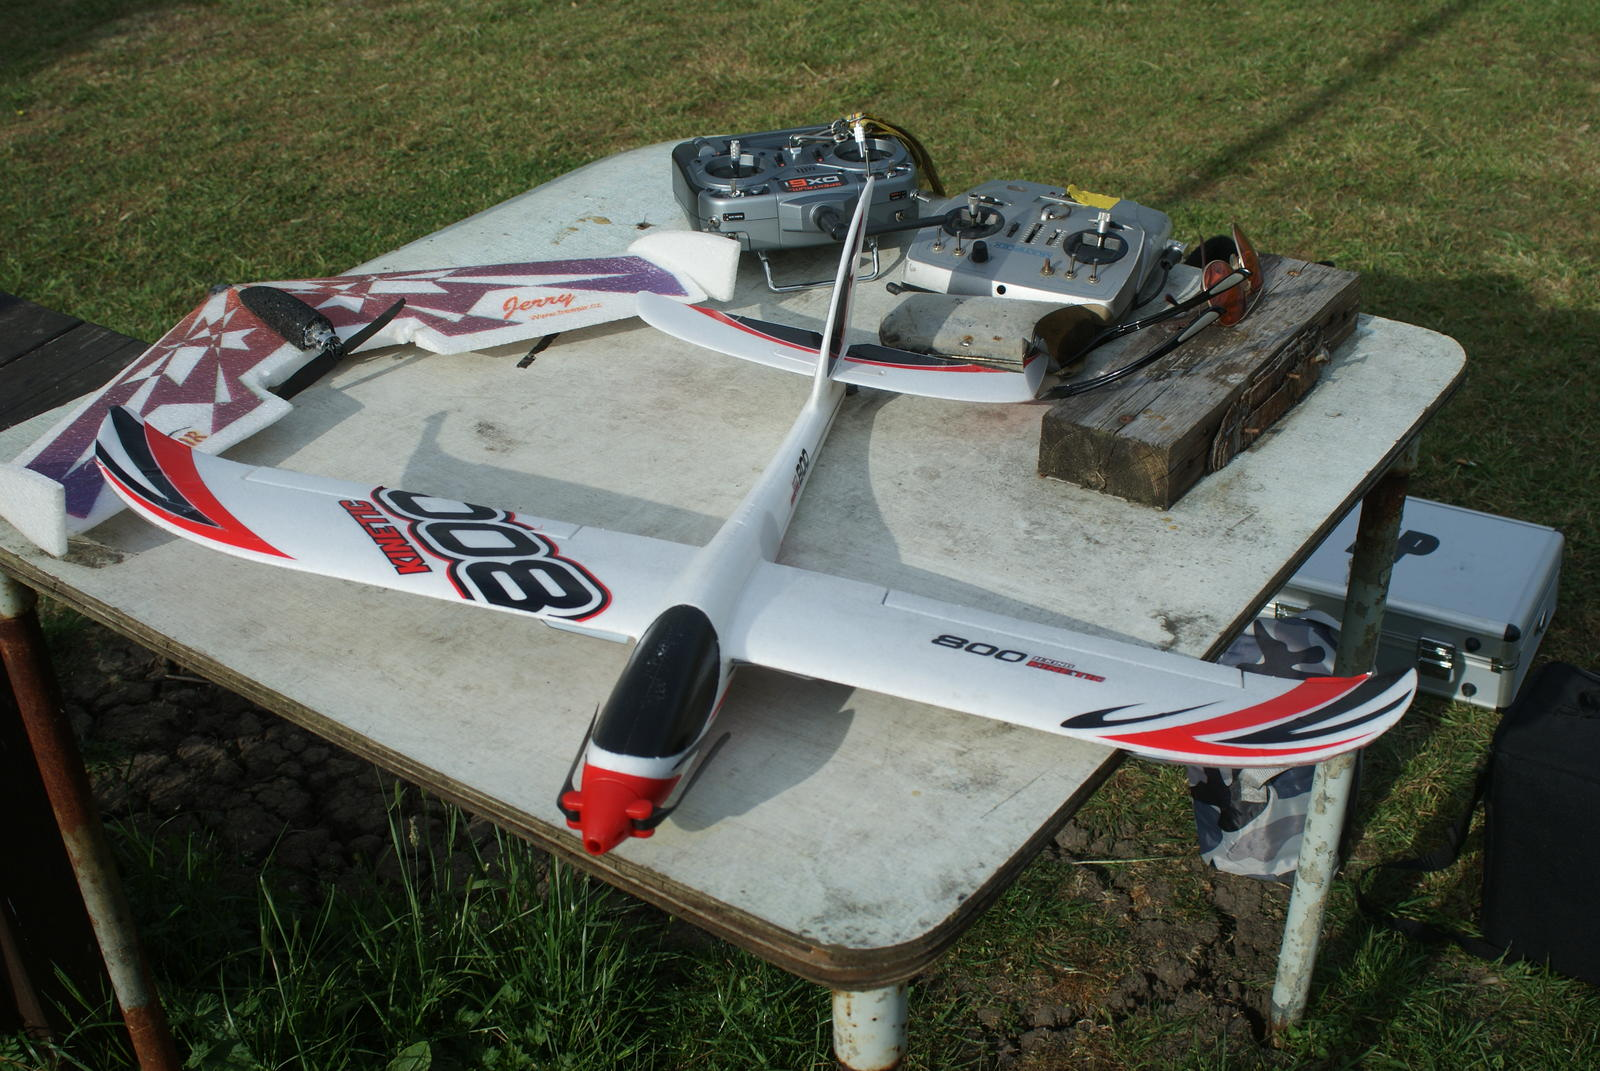 Name: DSC09608.jpg Views: 301 Size: 281.8 KB Description: Hobby king Kinetic 800, flies on the MPX. Very nice flyer.